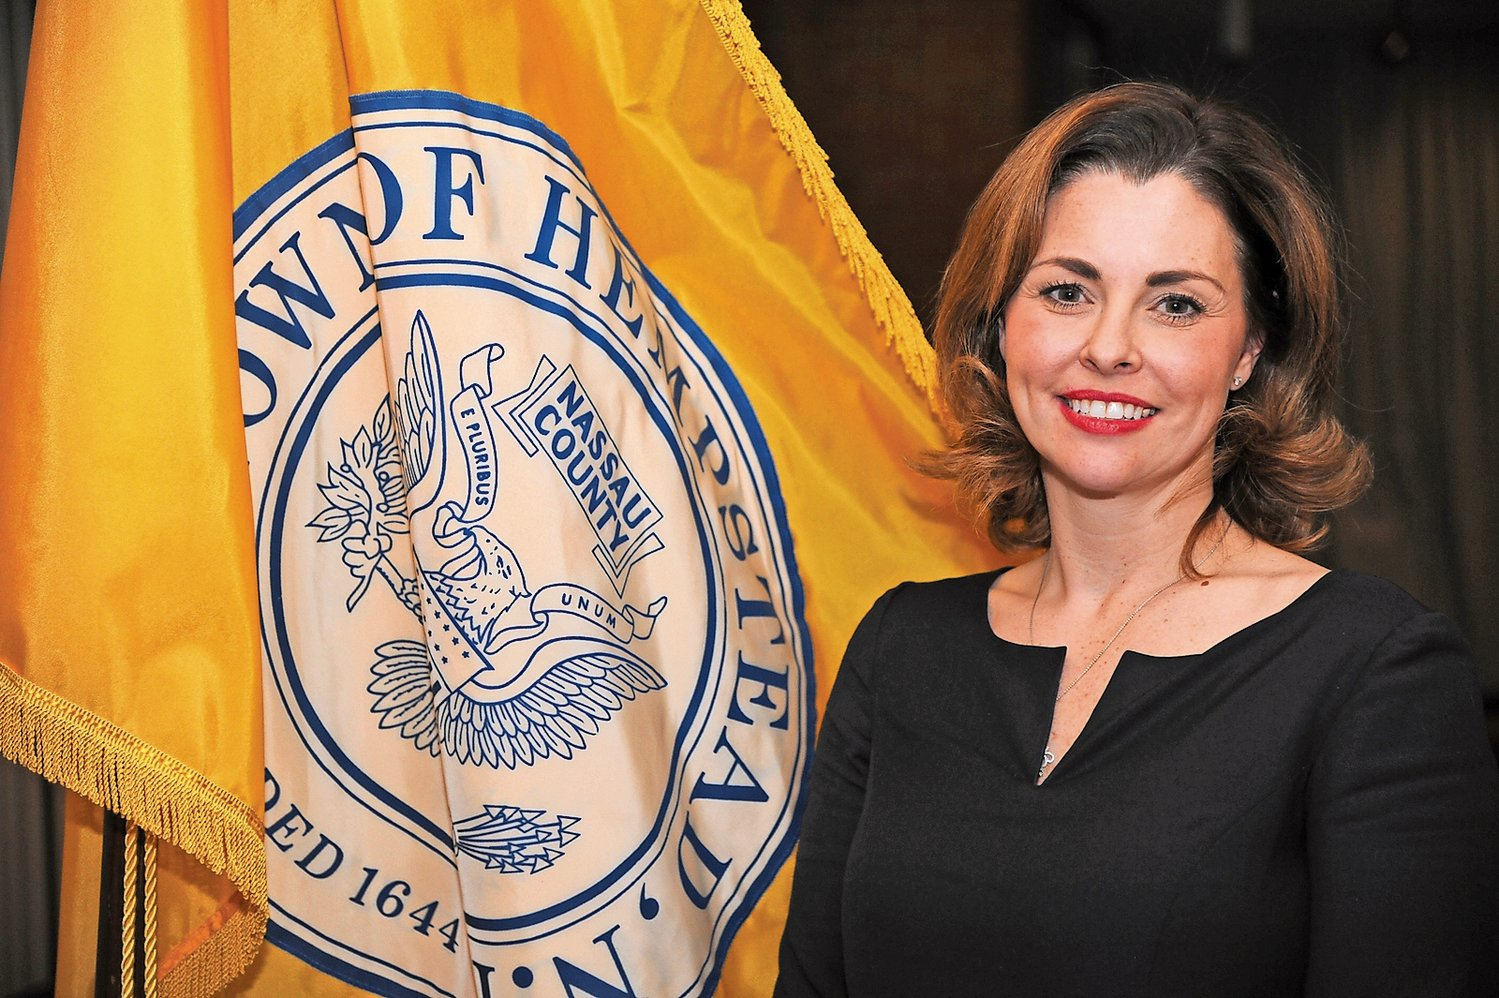 Hempstead Town Councilwoman Erin King Sweeney announced Sept. 12 that she would not seek re-election to the Town Board.